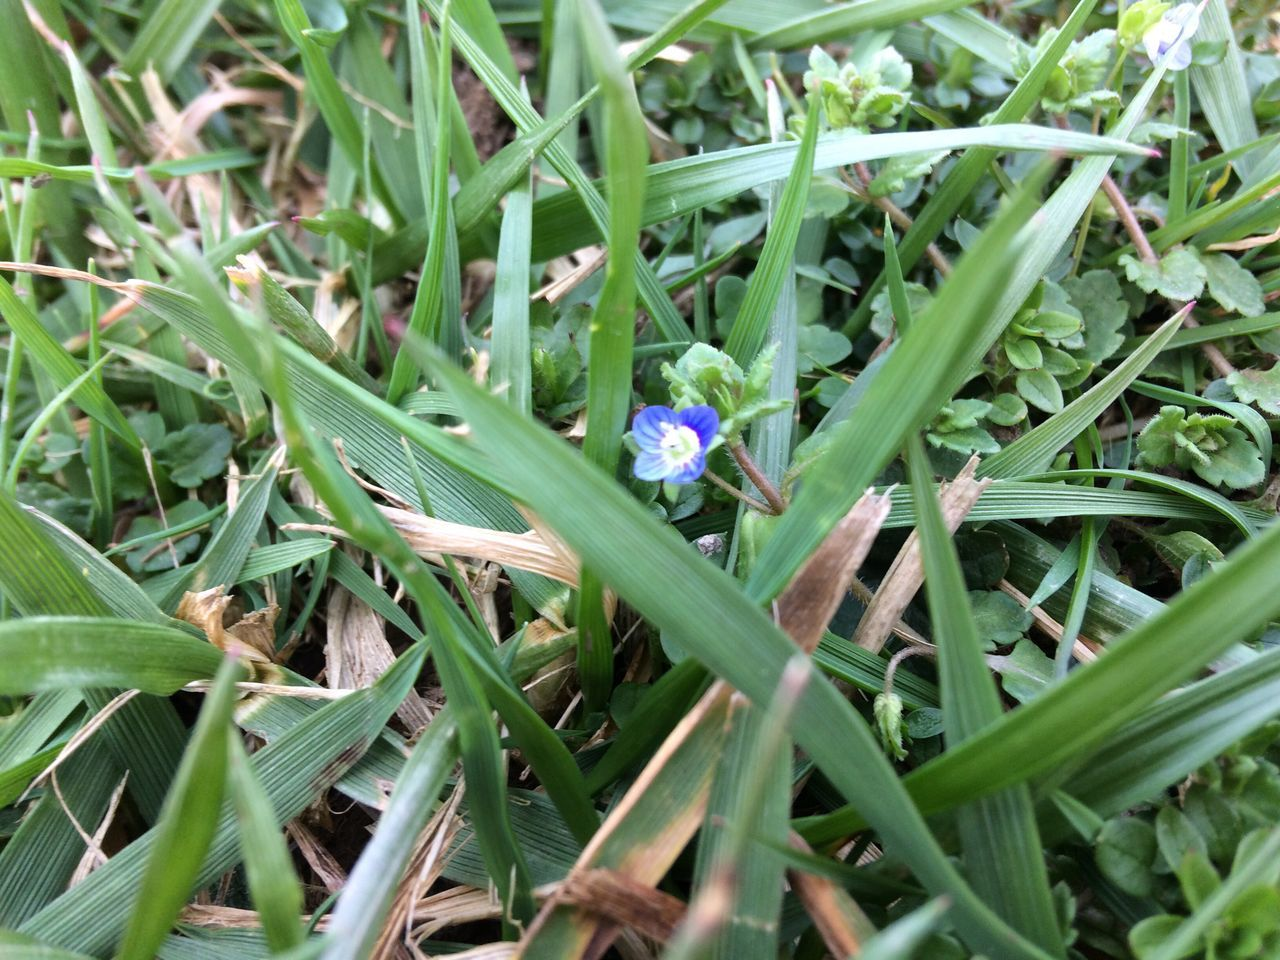 Growth Nature Green Color Beauty In Nature Plant Fragility Grass Flower Leaf Outdoors Field Freshness Day Insect No People Flower Head Close-up Blue Flowers